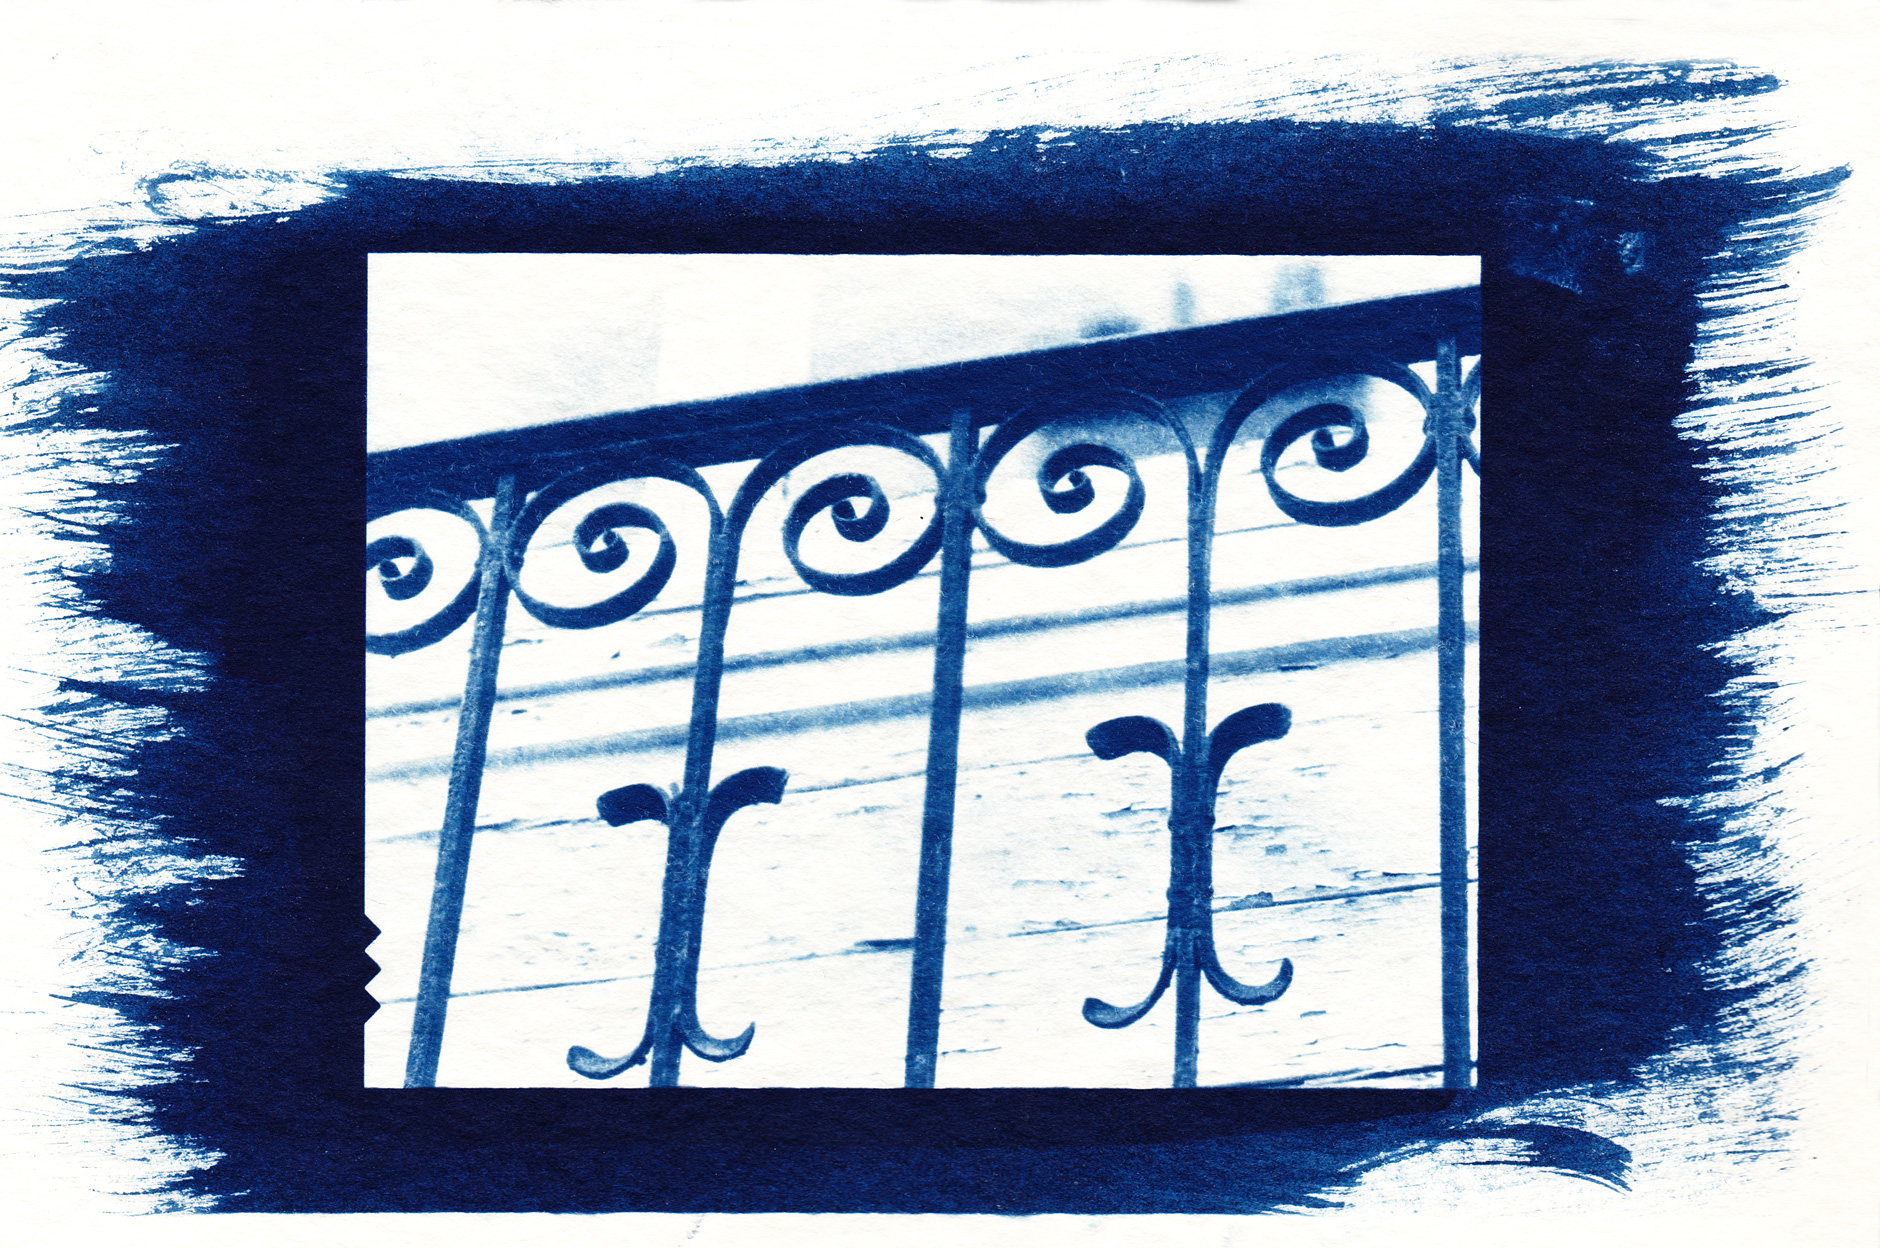 Cyanotype on paper image of a metal fence